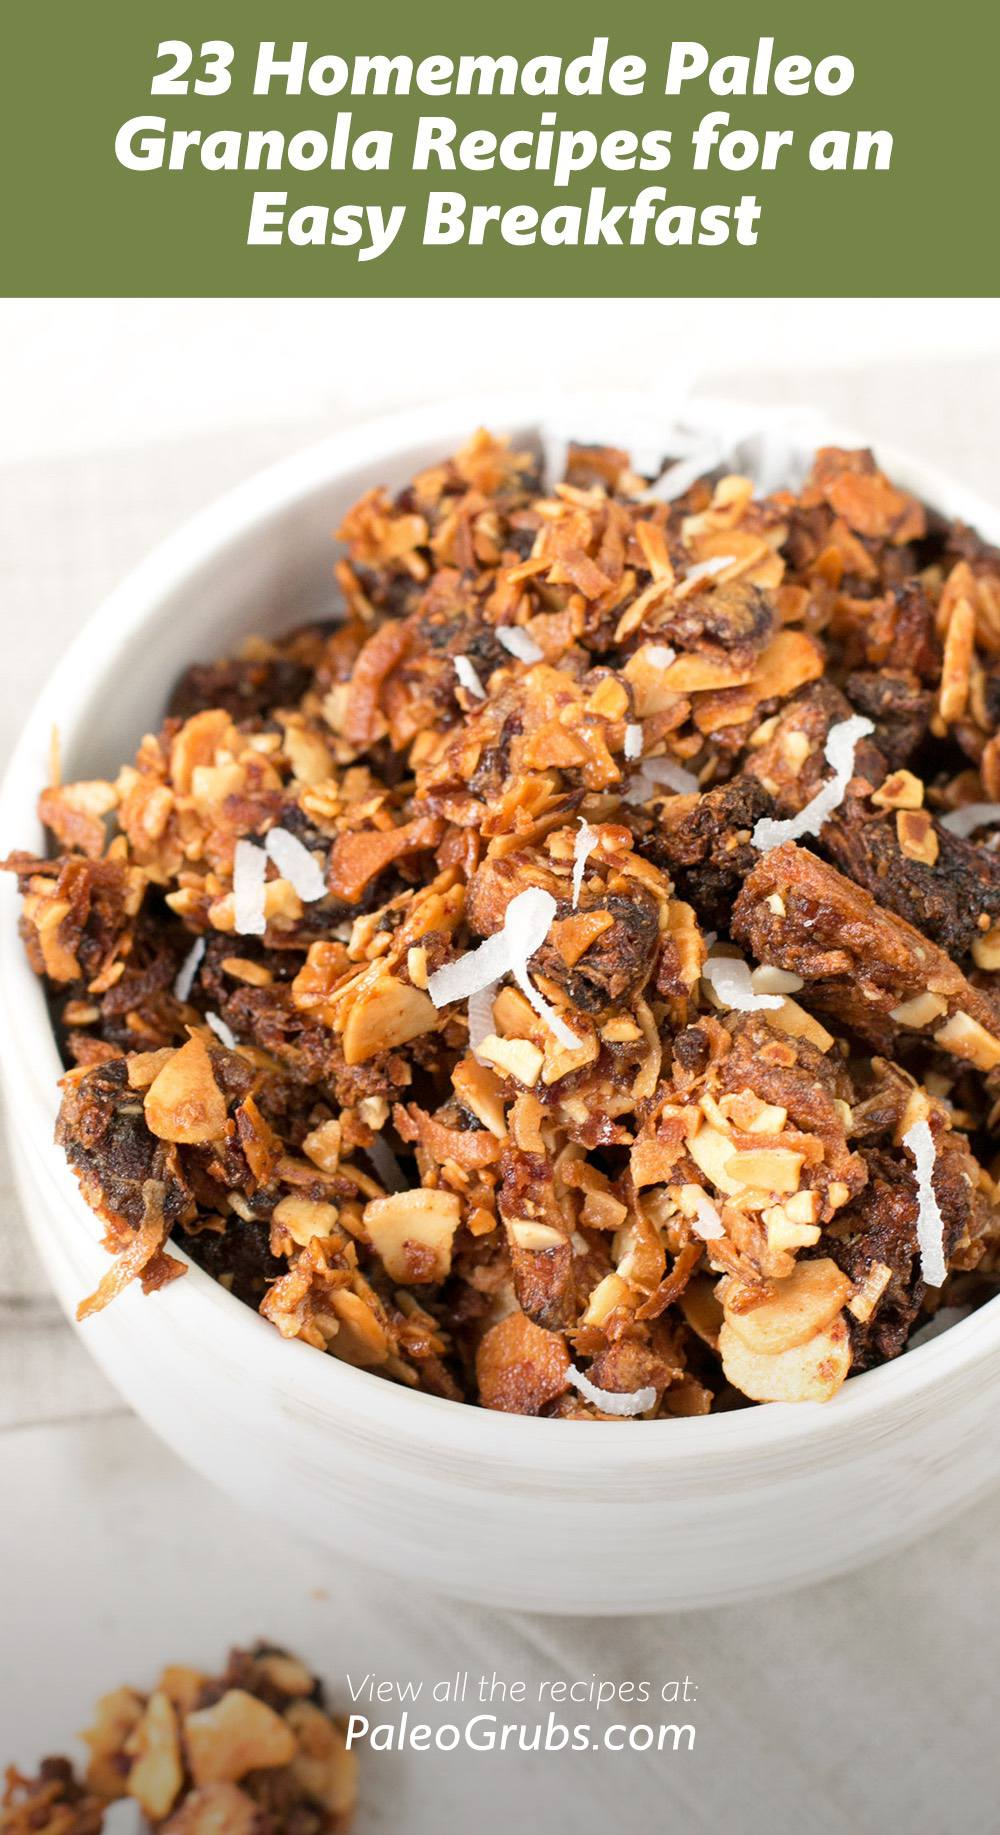 These grain-free, dairy-free granola recipes are a paleo staple for me and are the bomb as a healthy paleo snack, dessert or breakfast.